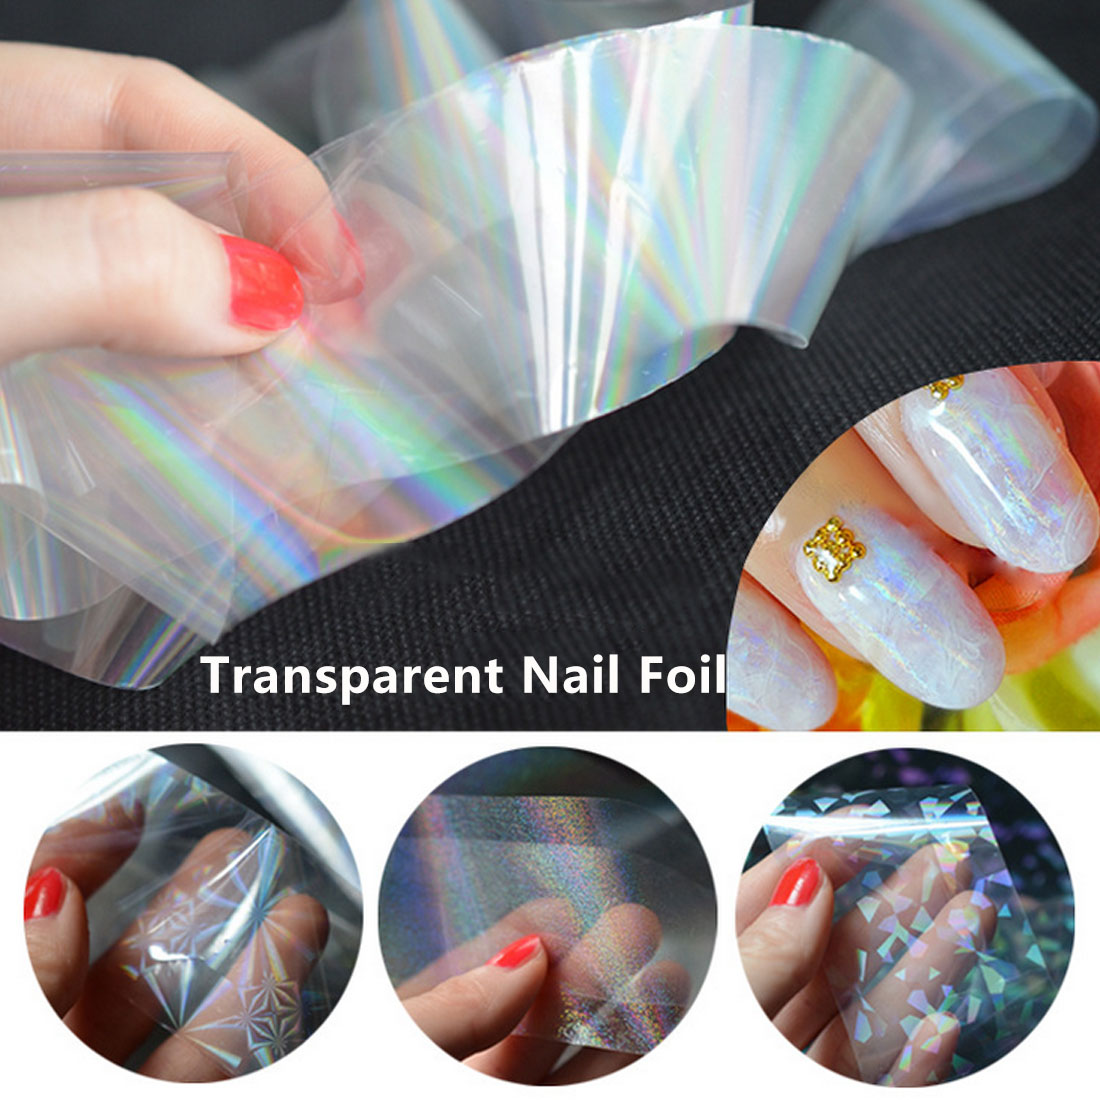 4*120cm Laser Nail Foil Firworks Holographic Transparent Refraction Manicure Nail Art Decos Lucency 8 Patterns Starry Stickers